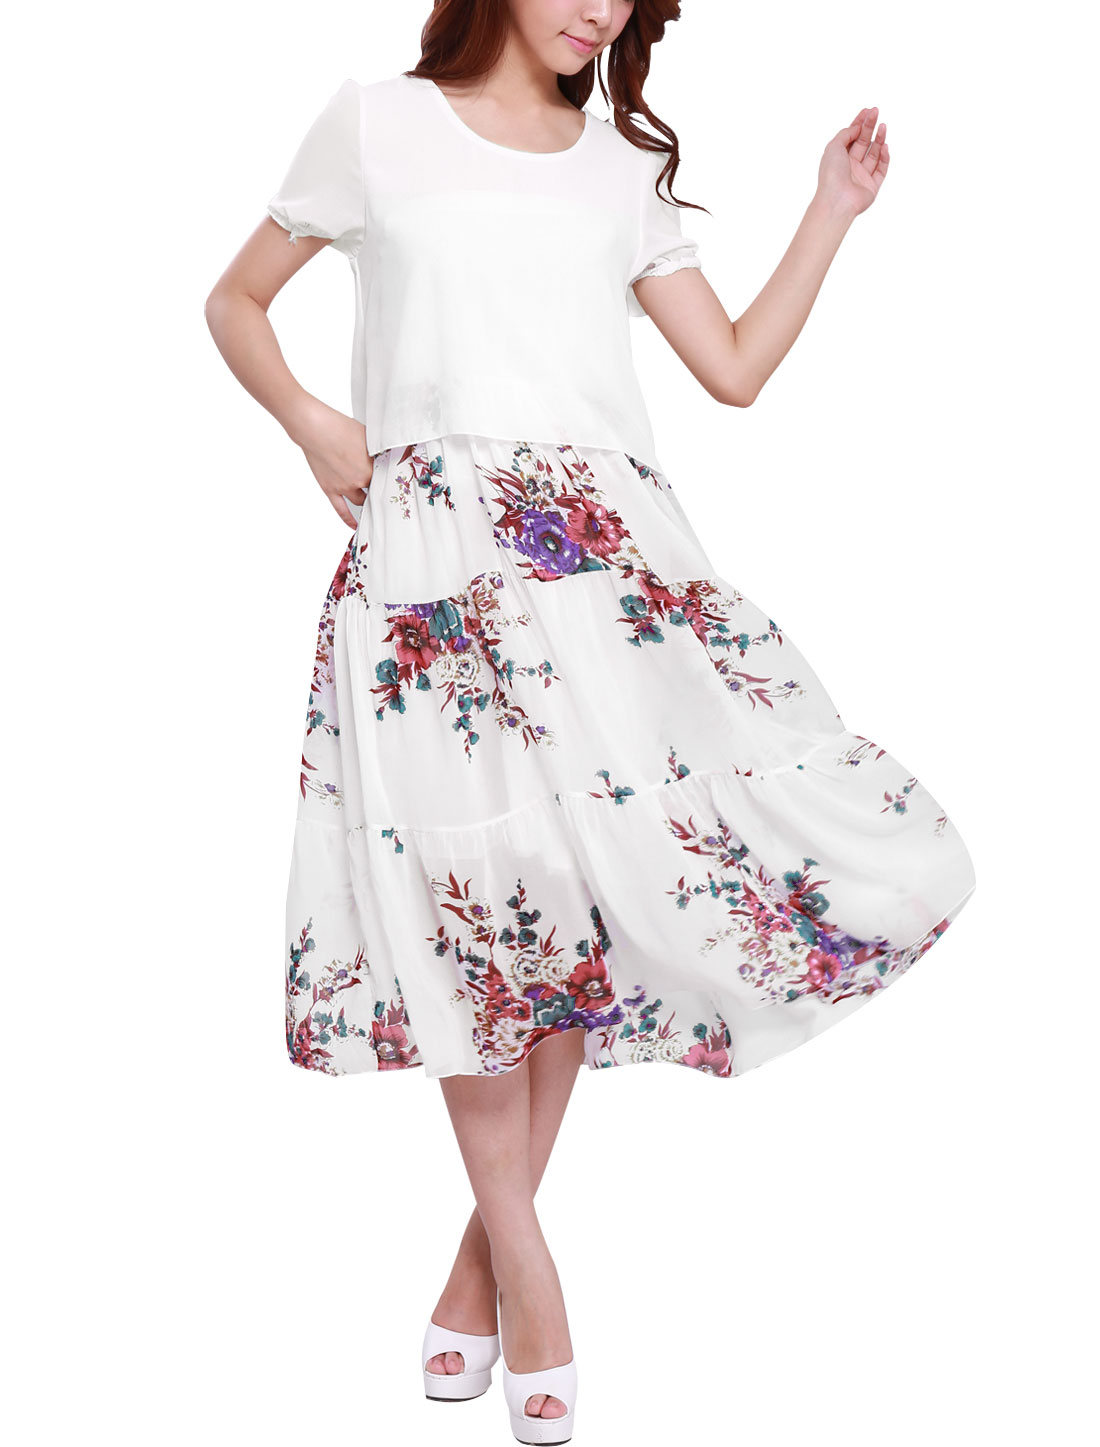 Lady Round Neck Short Sleeve Floral Prints Peasant Style Dress White L